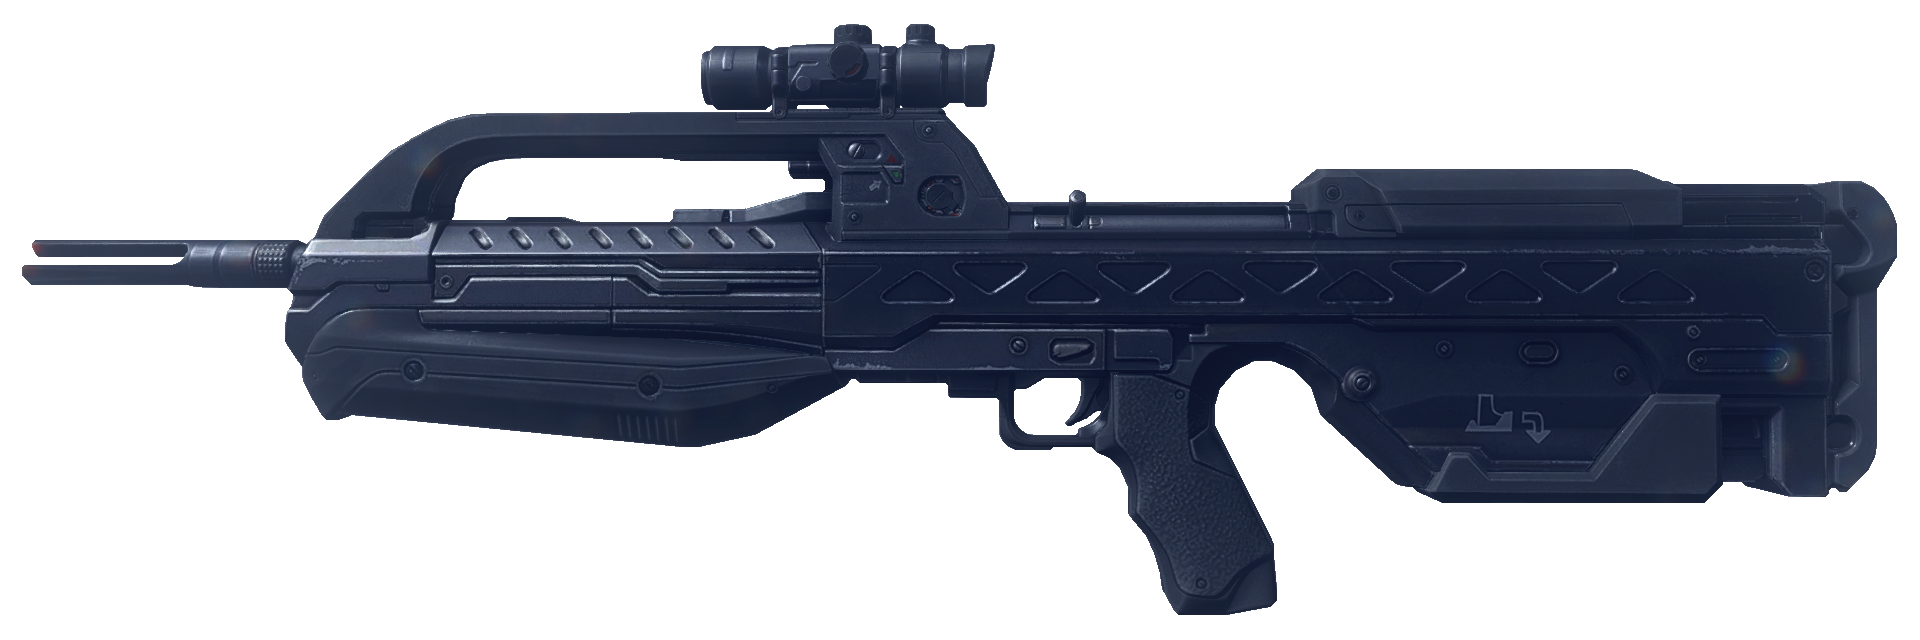 http://www.halopedia.org/images/thumb/3/37/H2A_-_Battle_rifle.png/800px-H2A_-_Battle_rifle.png